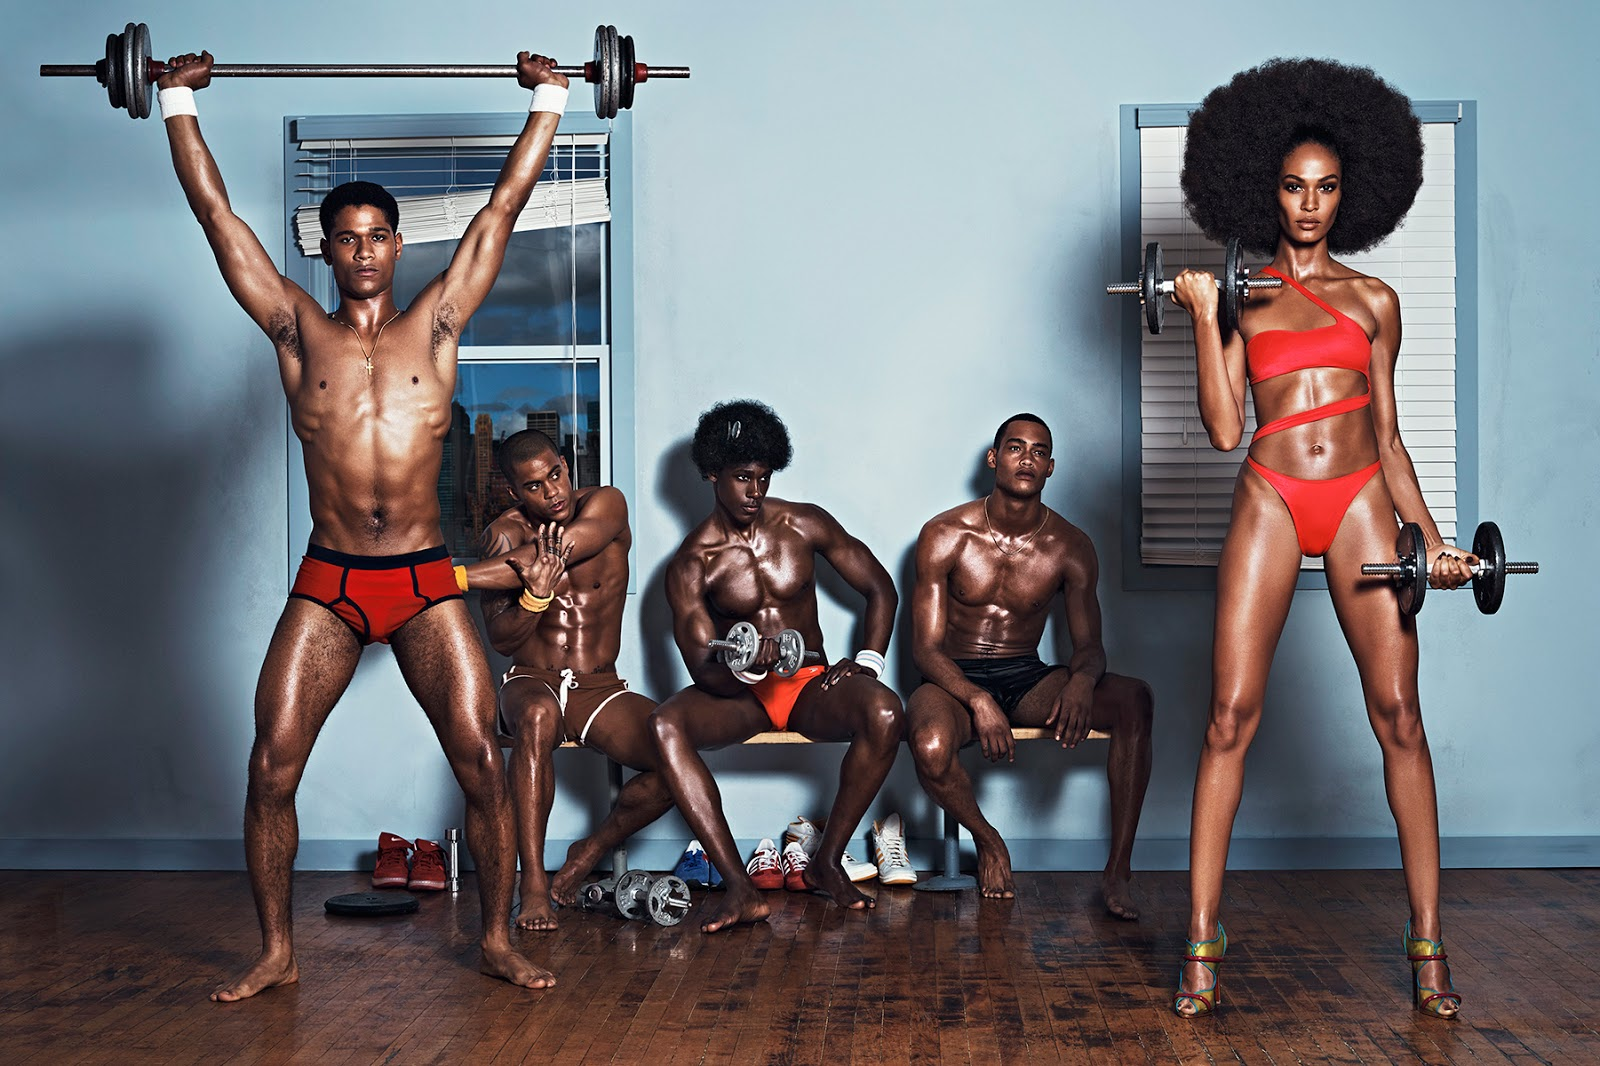 joan-smalls-by-lachlan-bailey-for-industrie-magazine-7-3